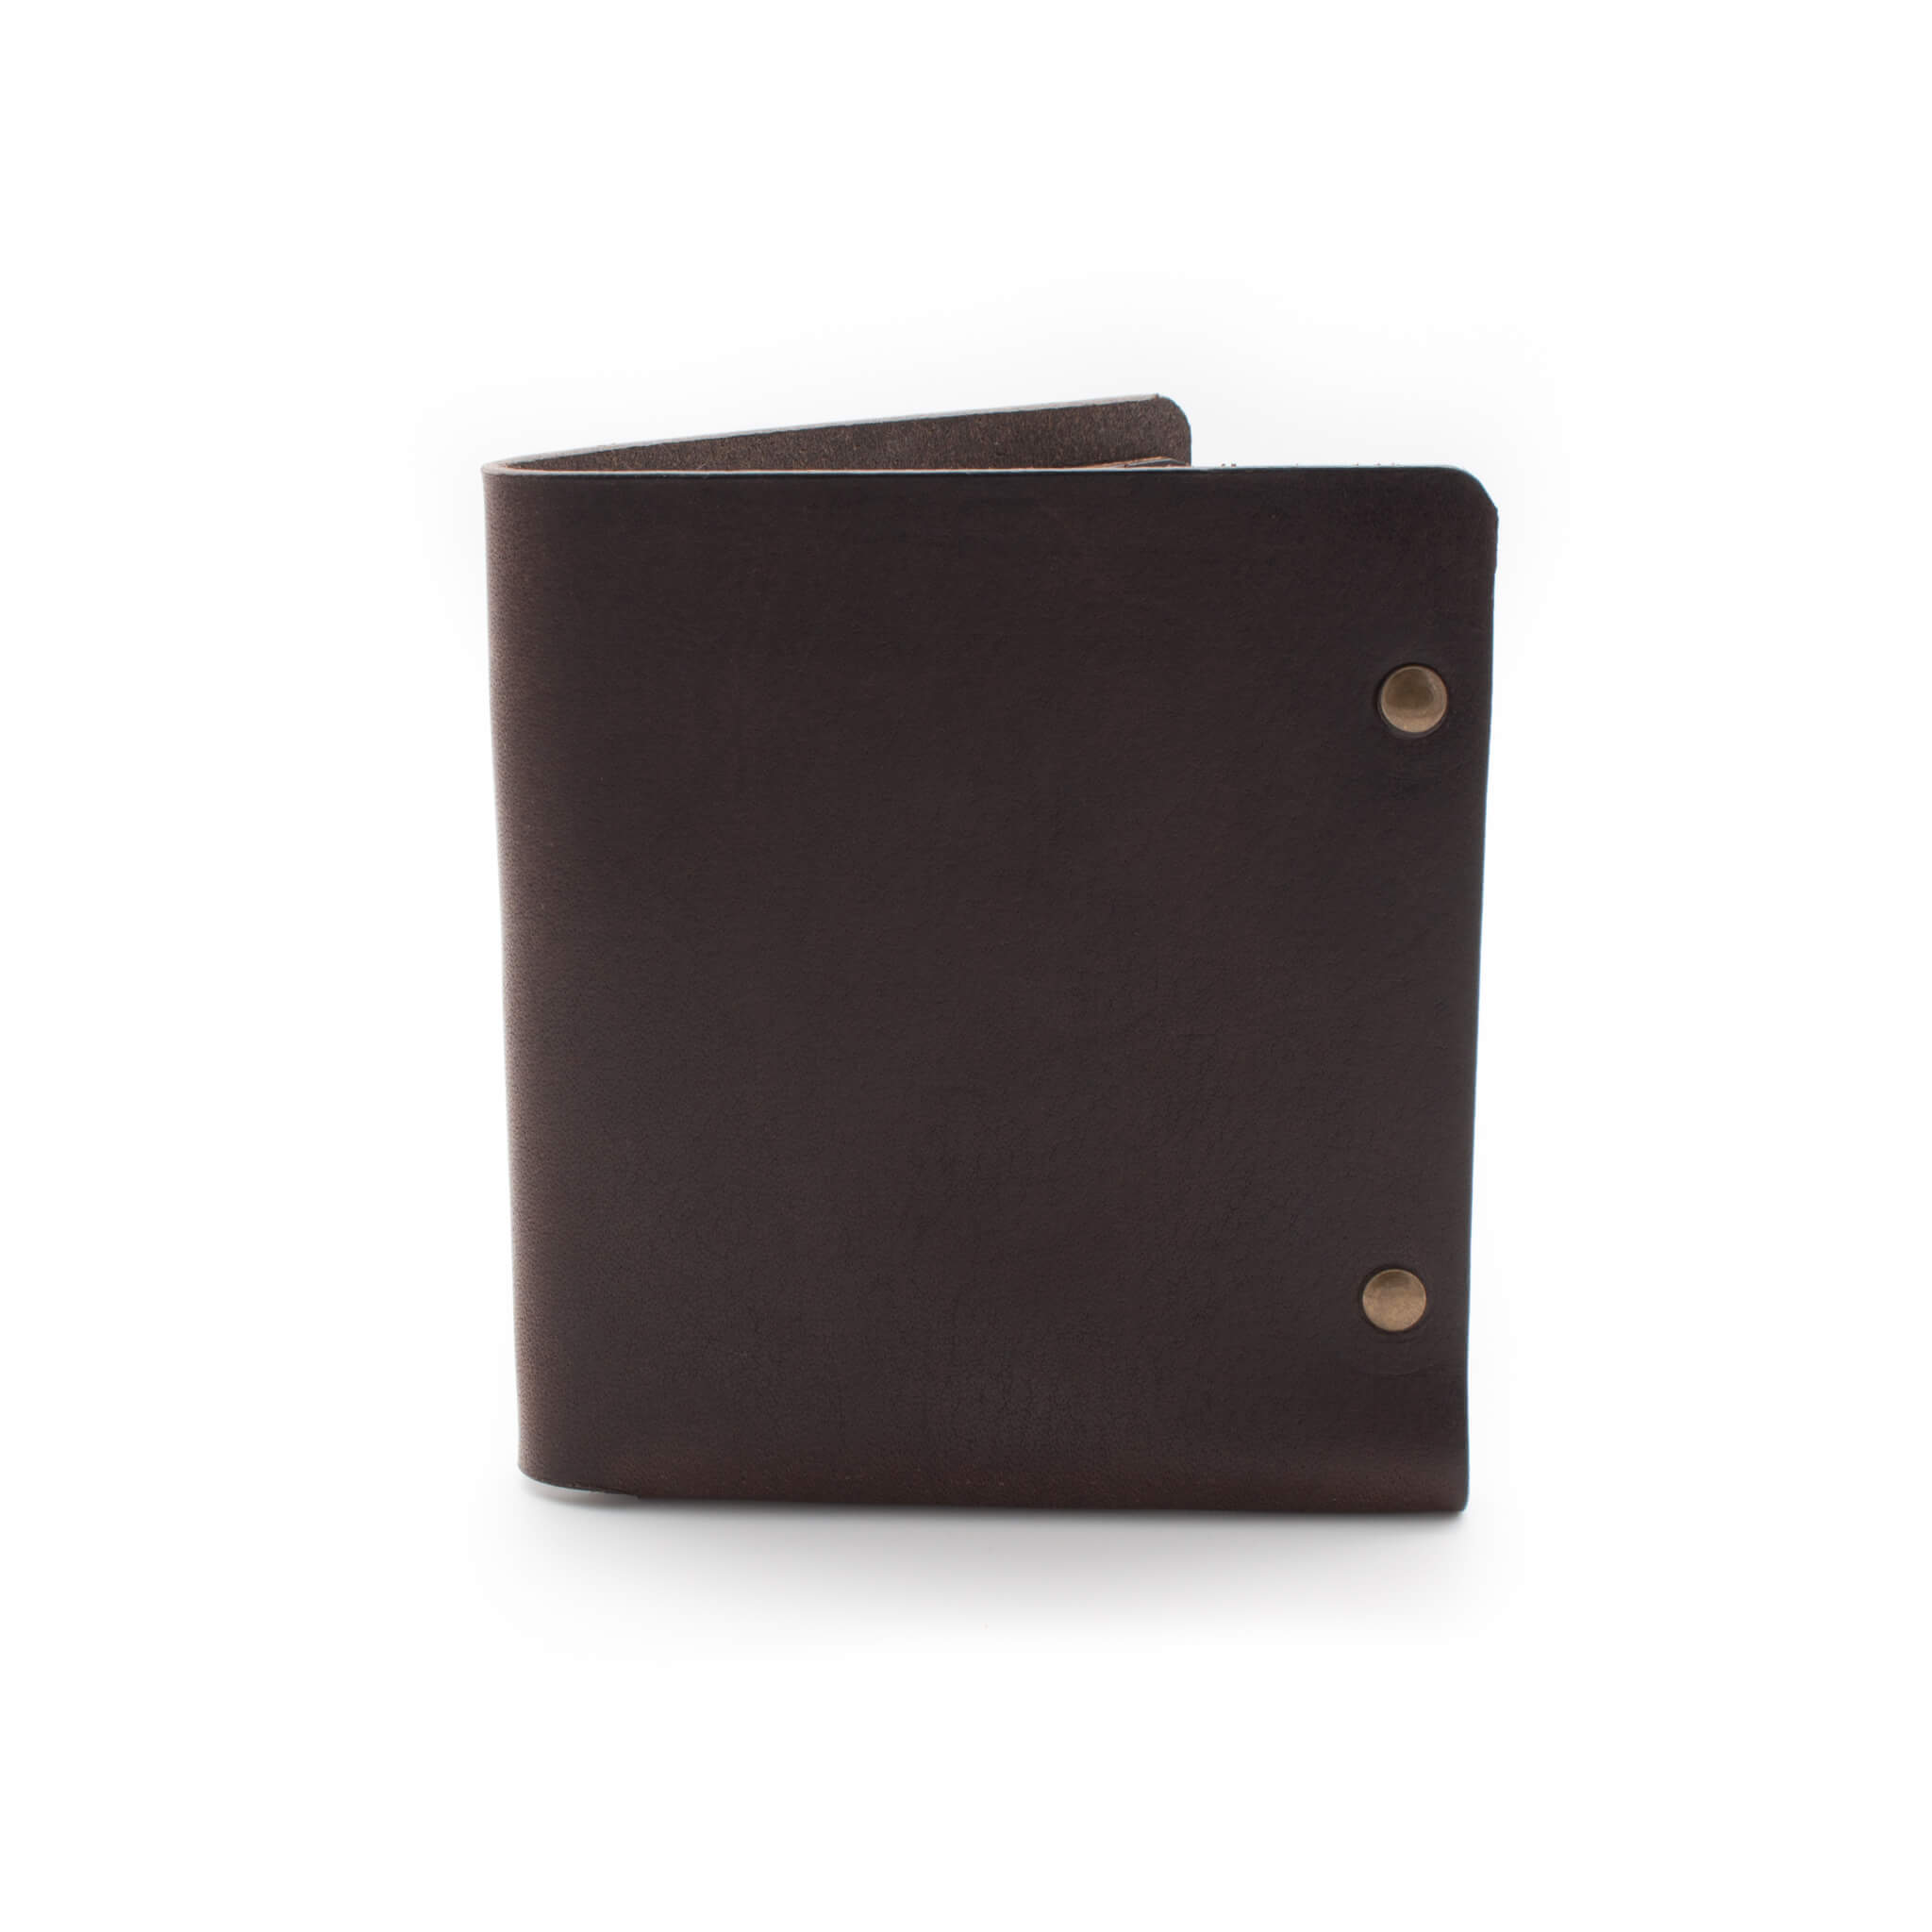 Devon made leather bifold wallet